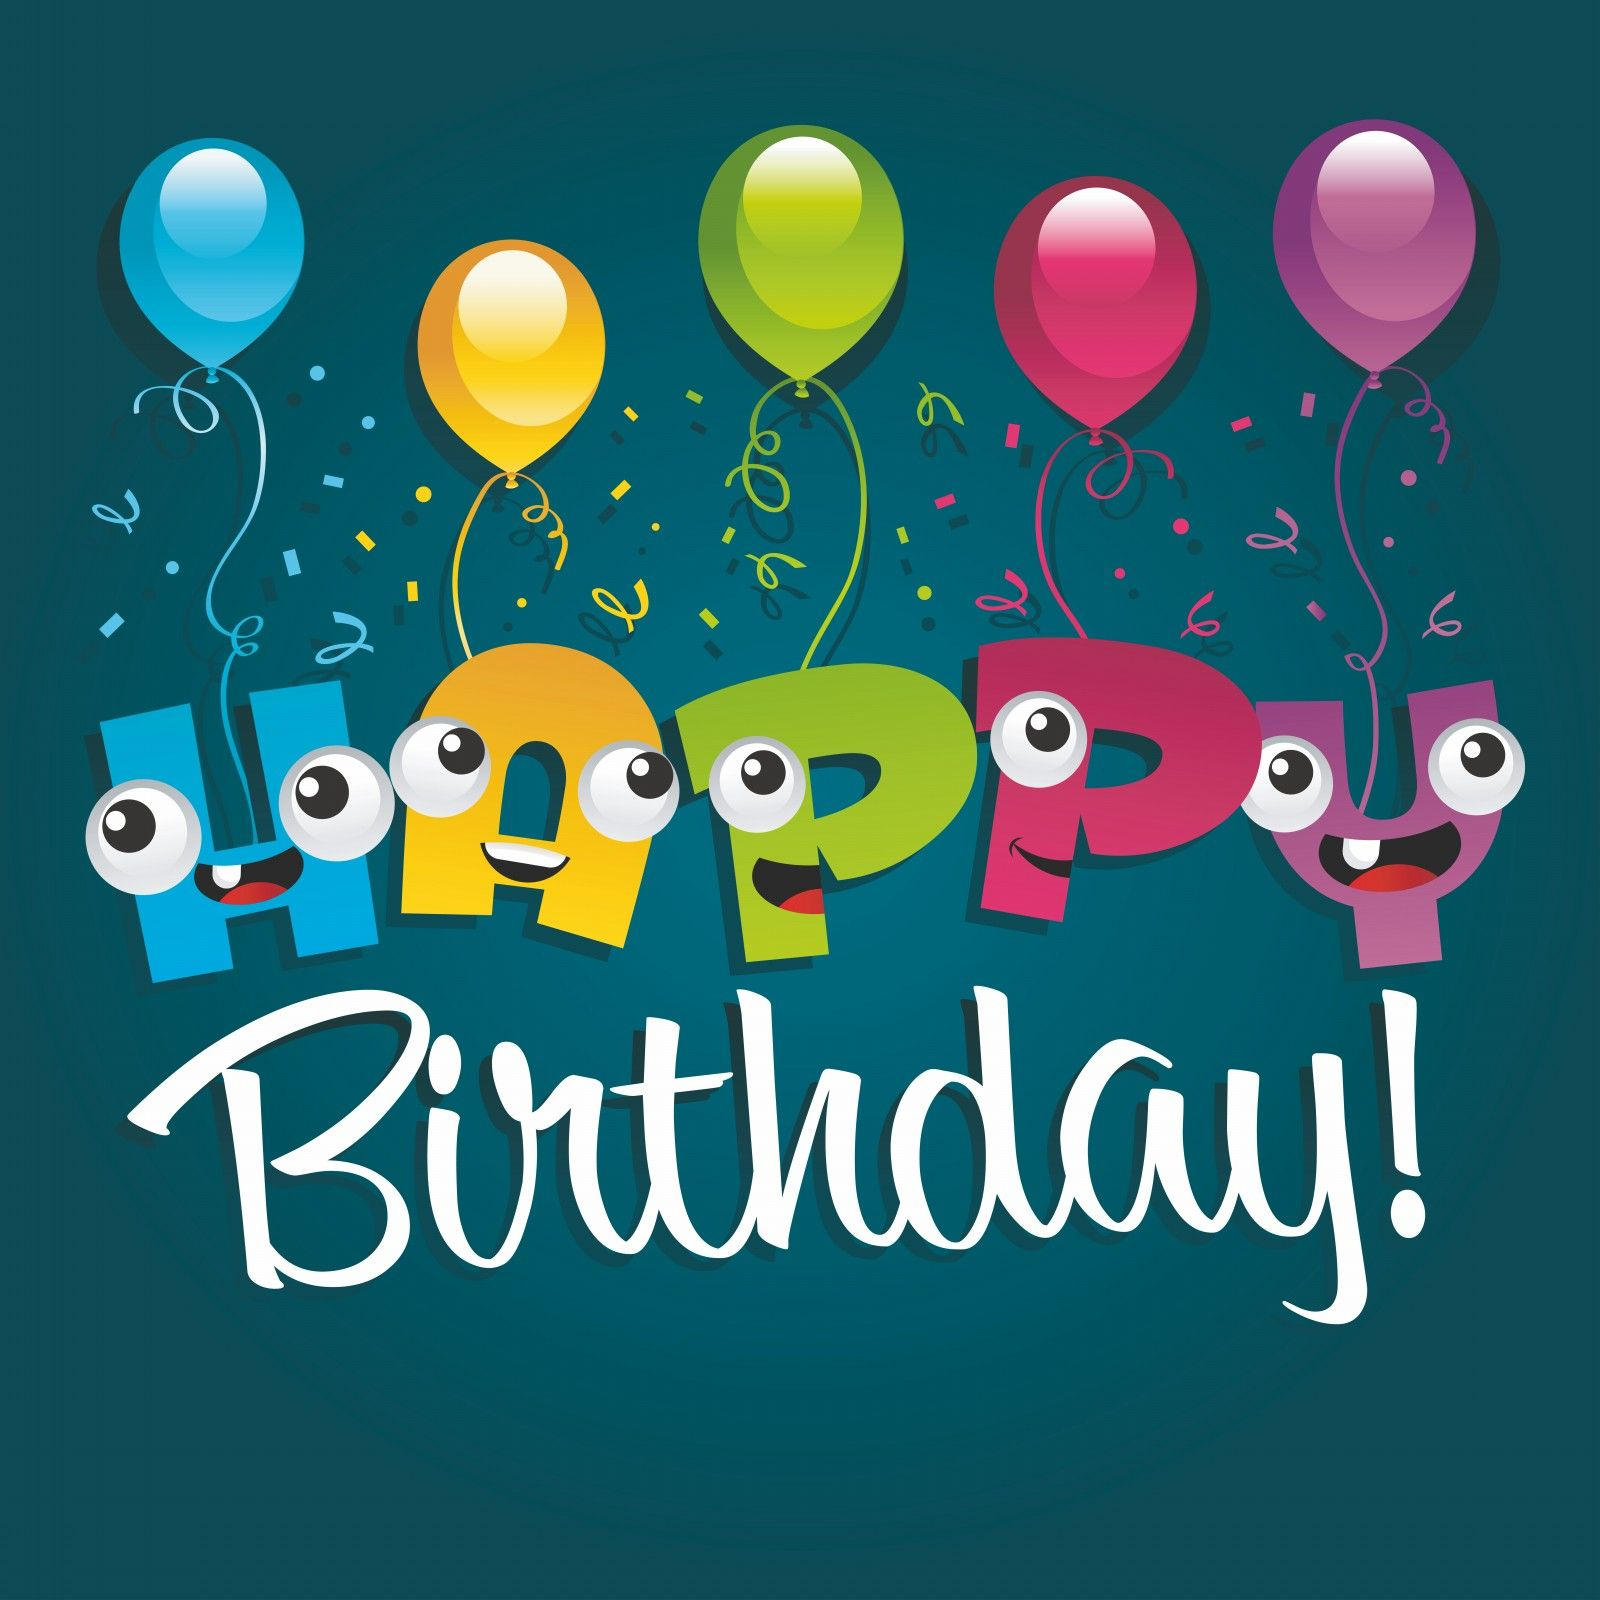 Happy Birthday Greeting Card Design Funny cartoon Characters24 – Send a Birthday Card Via Email